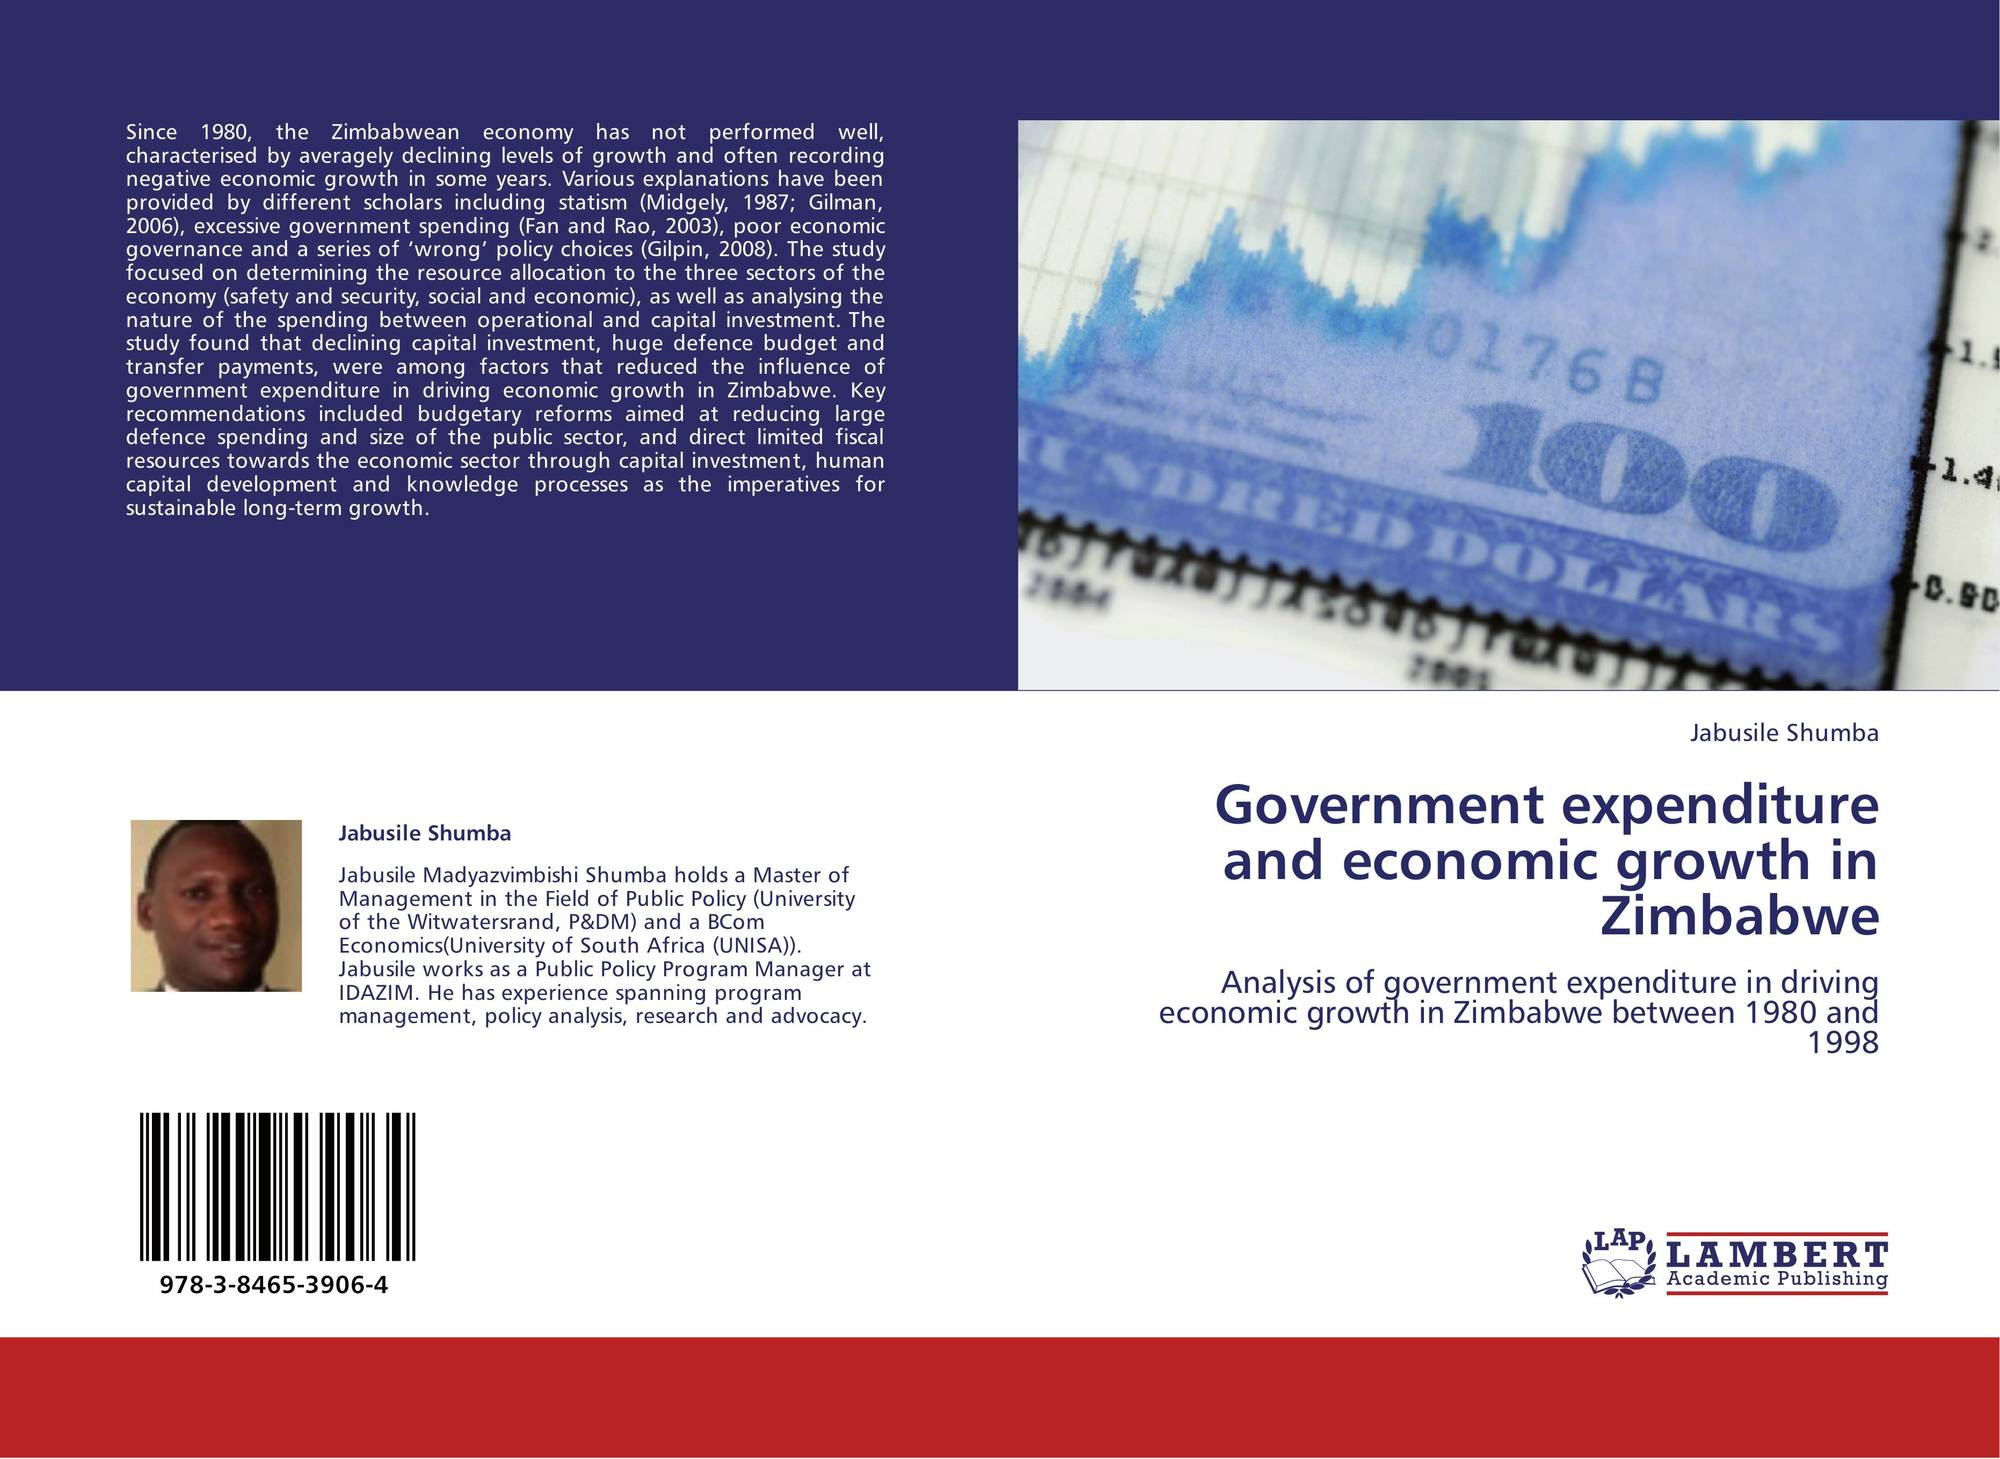 government expenditure and economic development Government expenditure and economic growth in nigeria (1981-2013) abstract this study examined the impact of government expenditure on economic growth in nigeria within the sample period, 1981-2013.